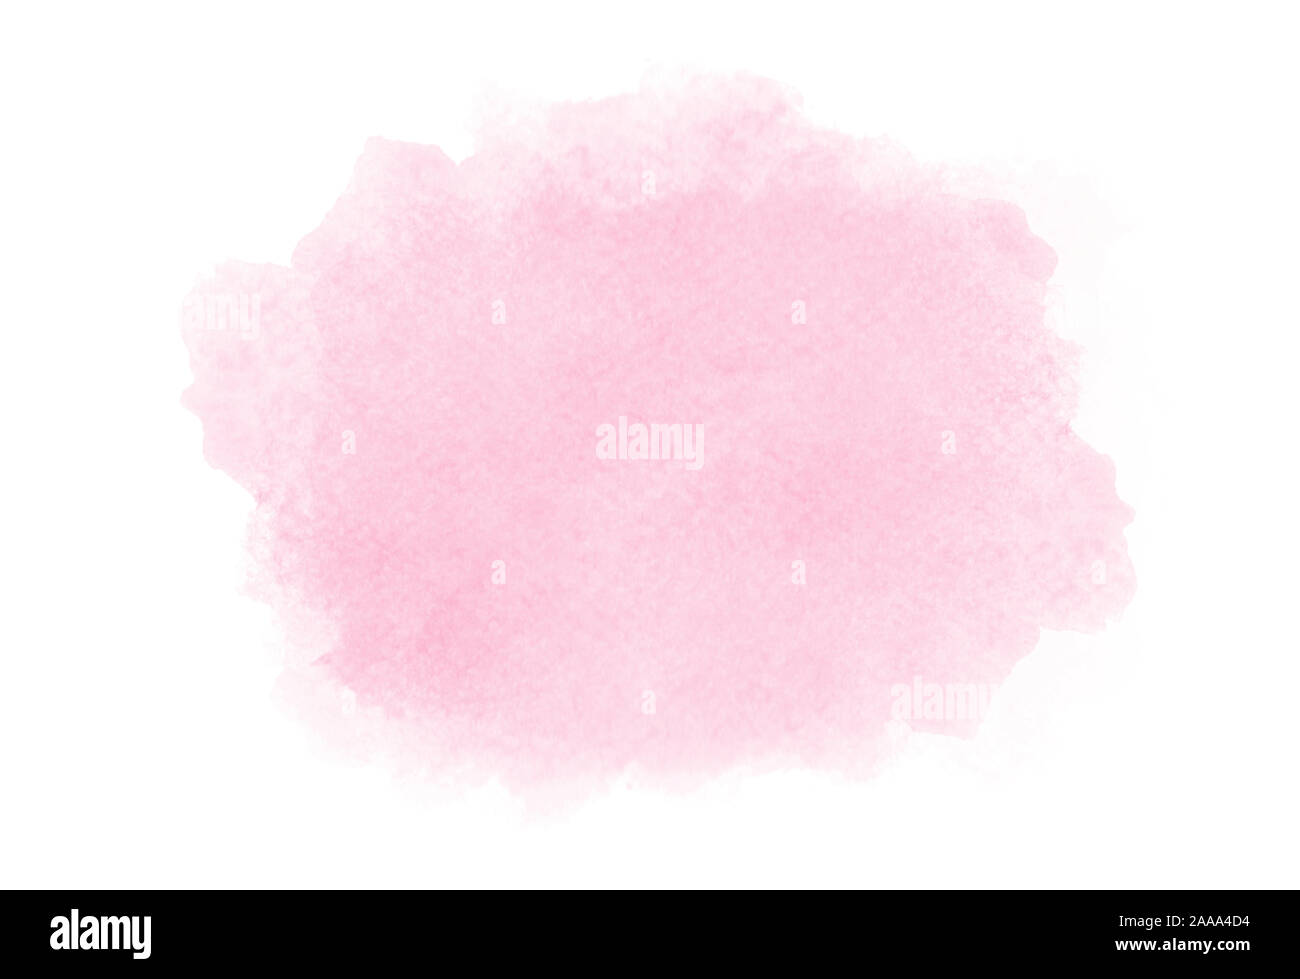 Pink watercolor on white backgroung Stock Photo